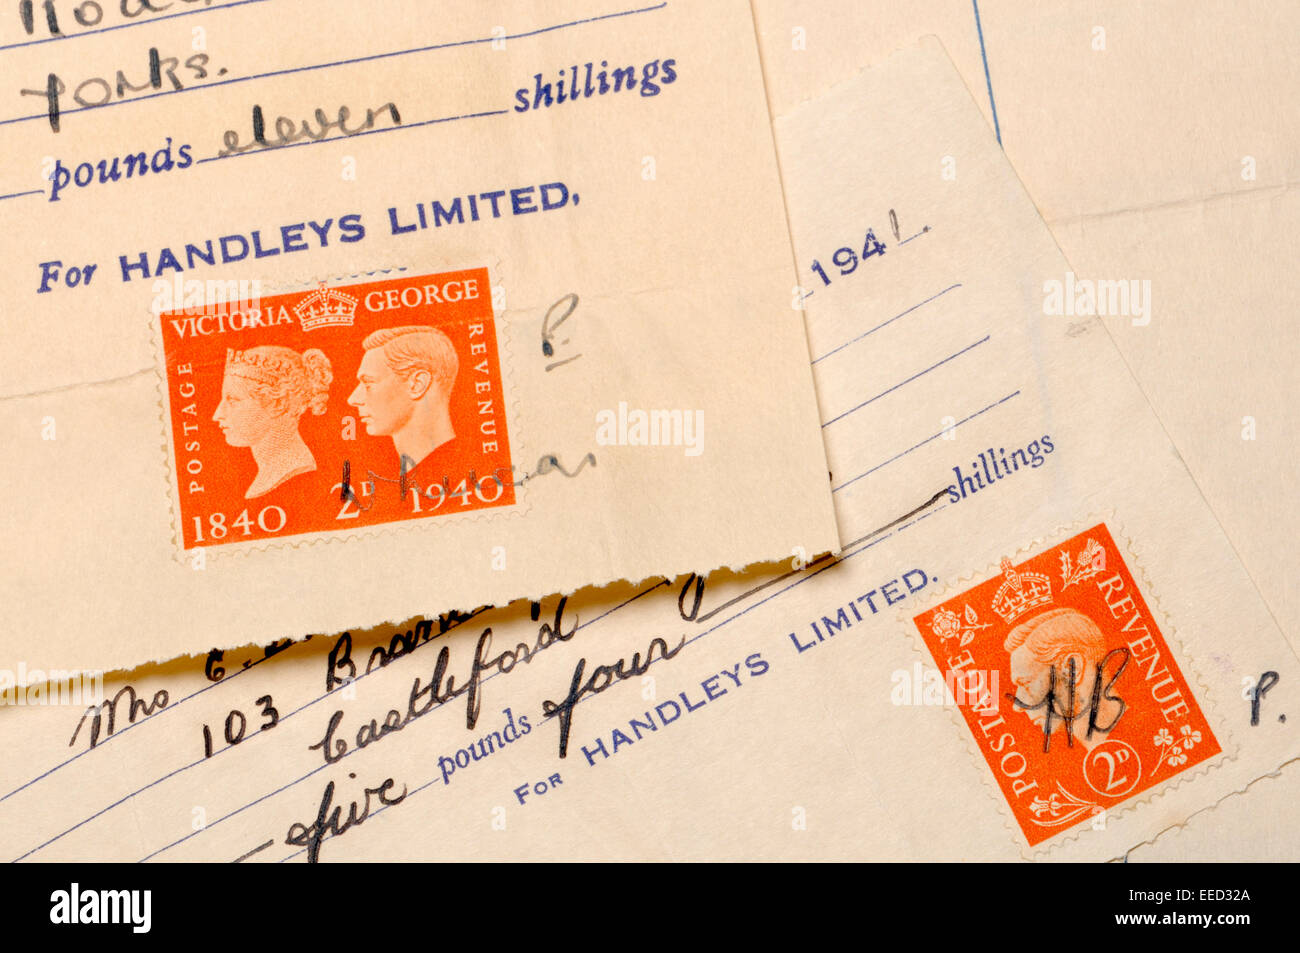 Postage stamps used to legally validate a receipt - George VI, 1941 - Stock Image